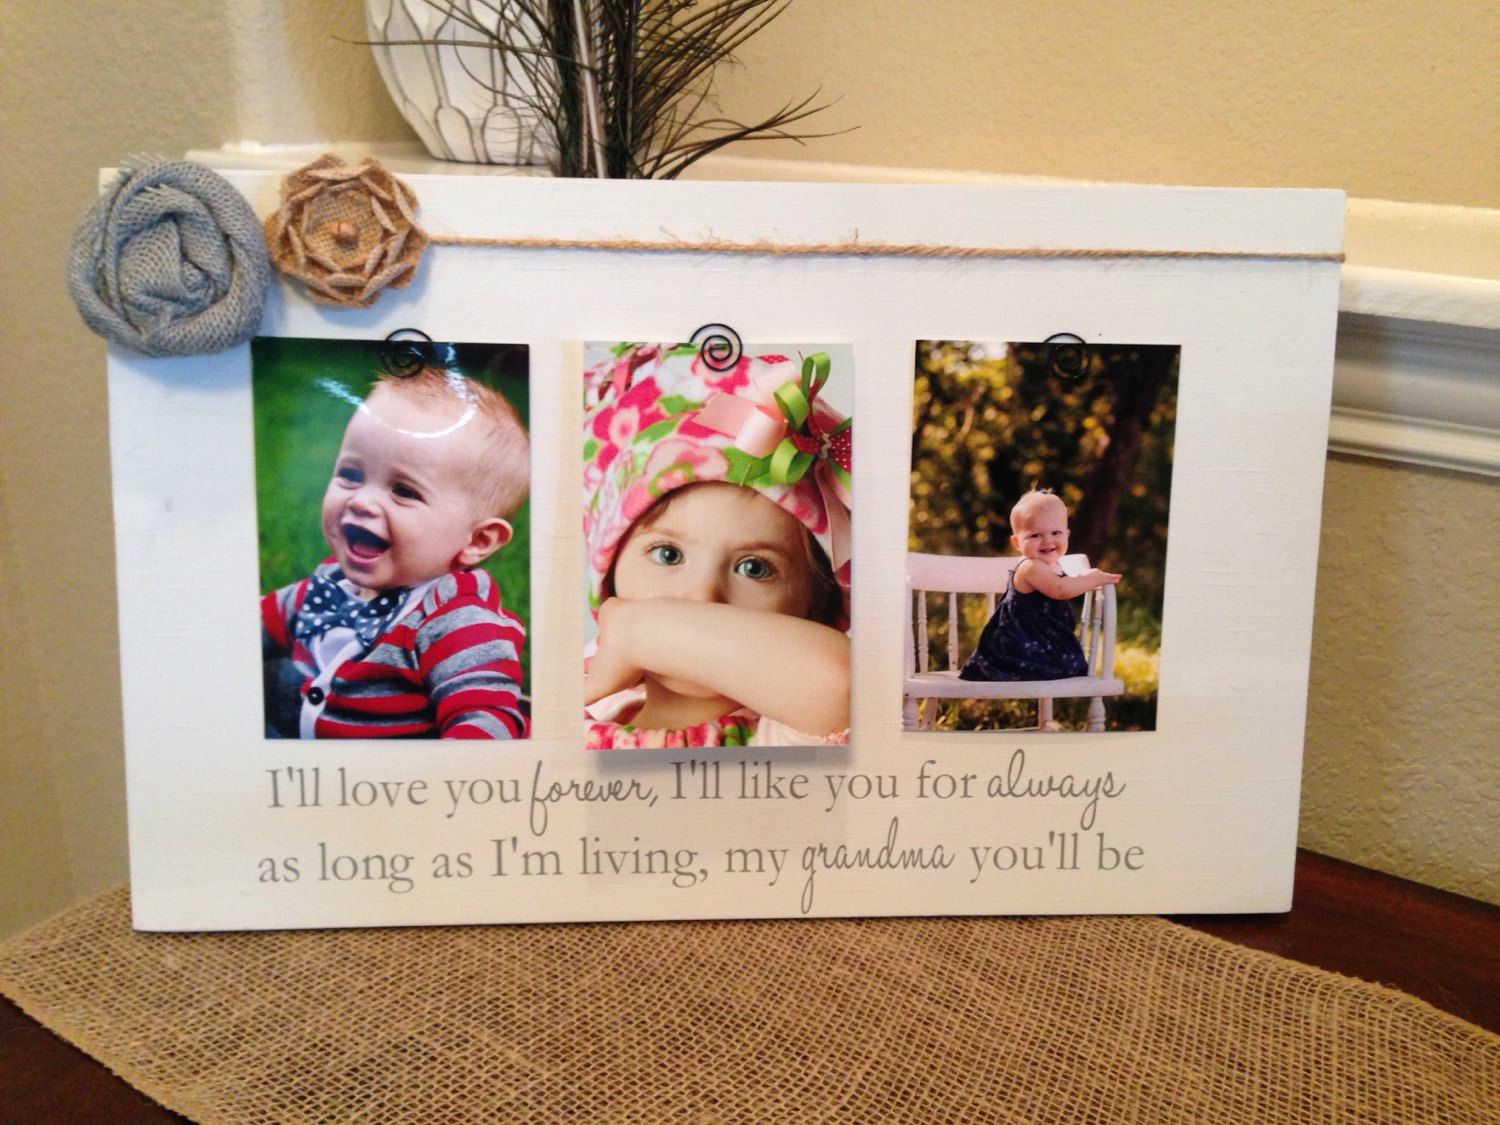 Grandma Mothers Day Gift Grandma Personalized Gift Ill Love You